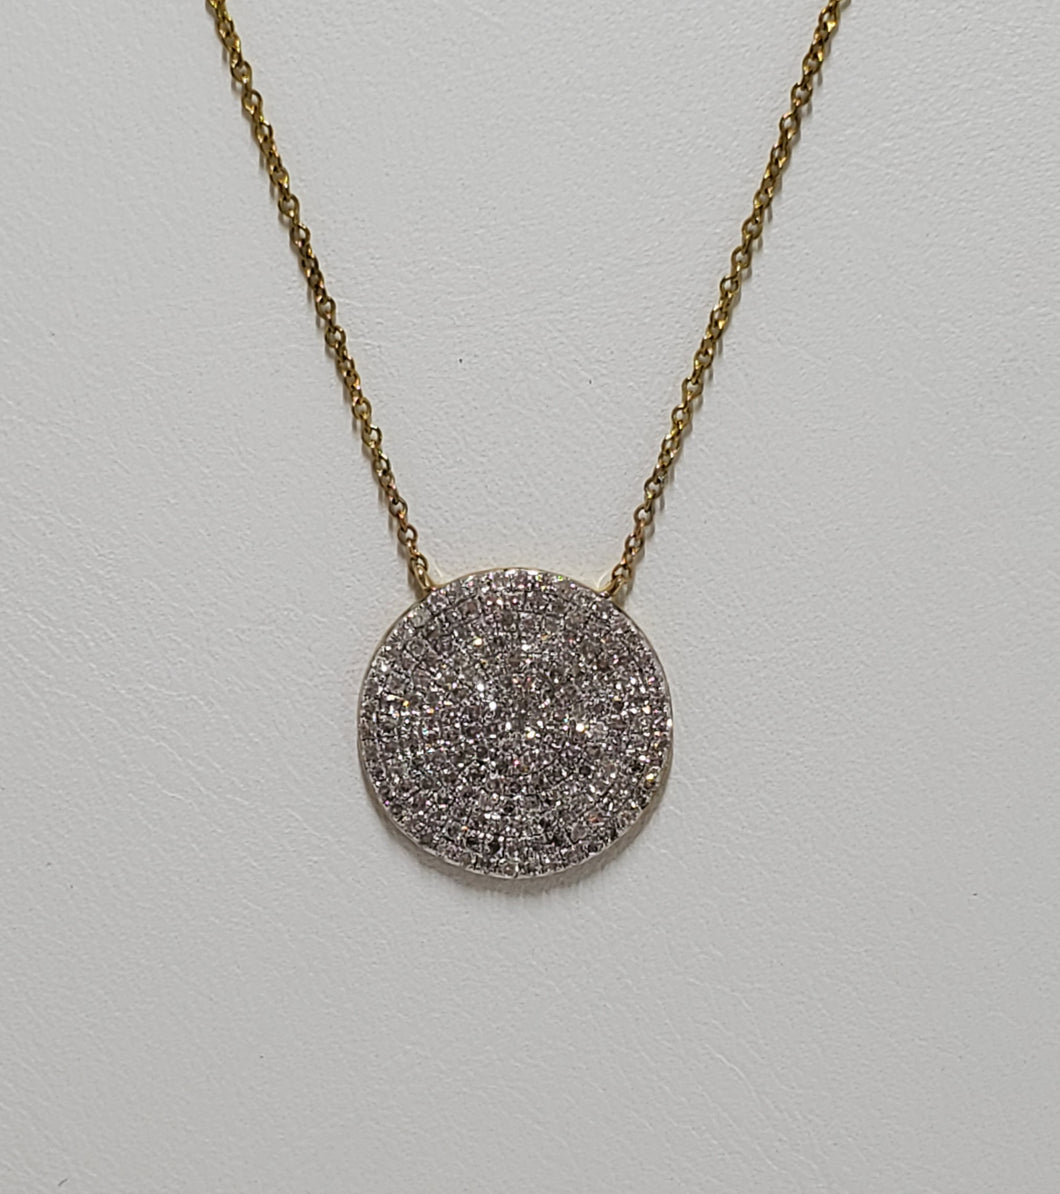 10k Yellow Gold Pave Diamond Necklace